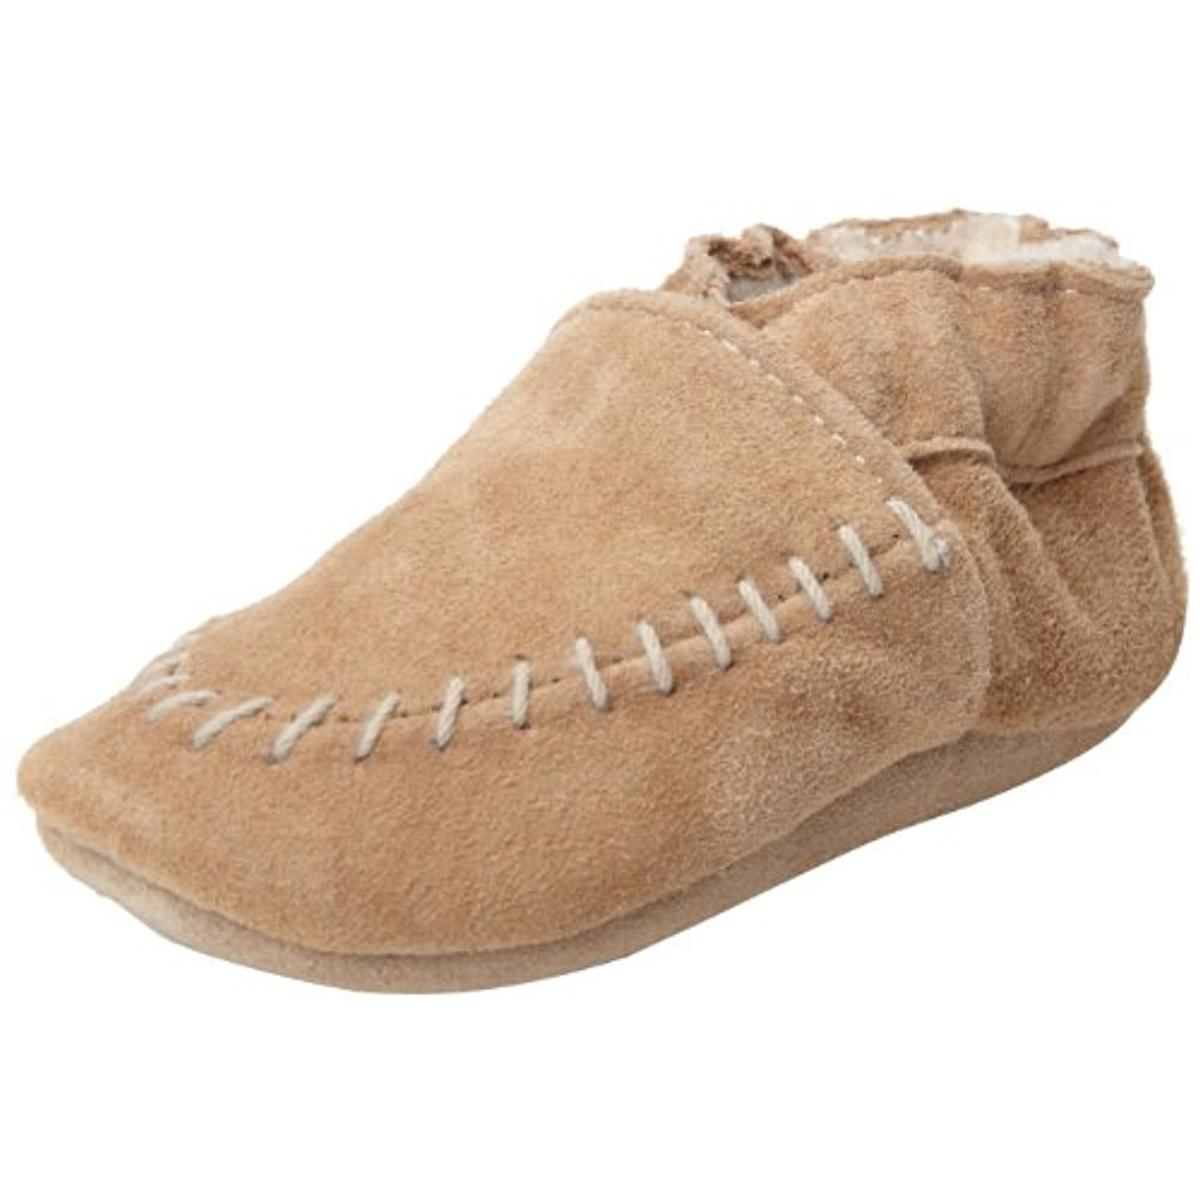 Robeez Infant Suede Moccasins by Robeez